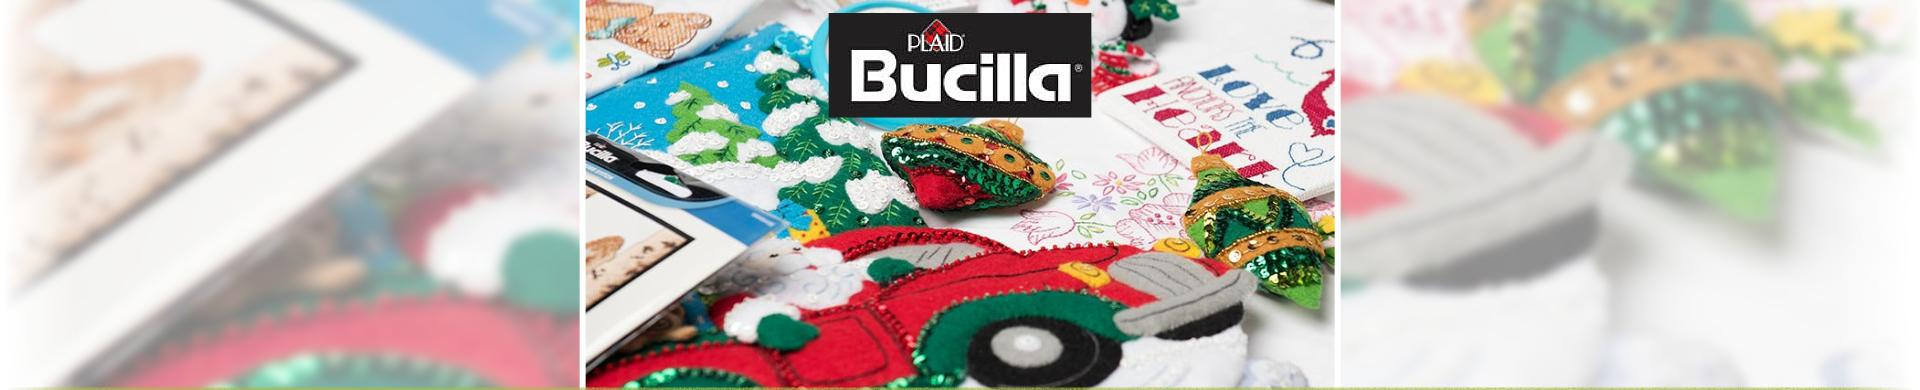 Bucilla Felt Applique Kits